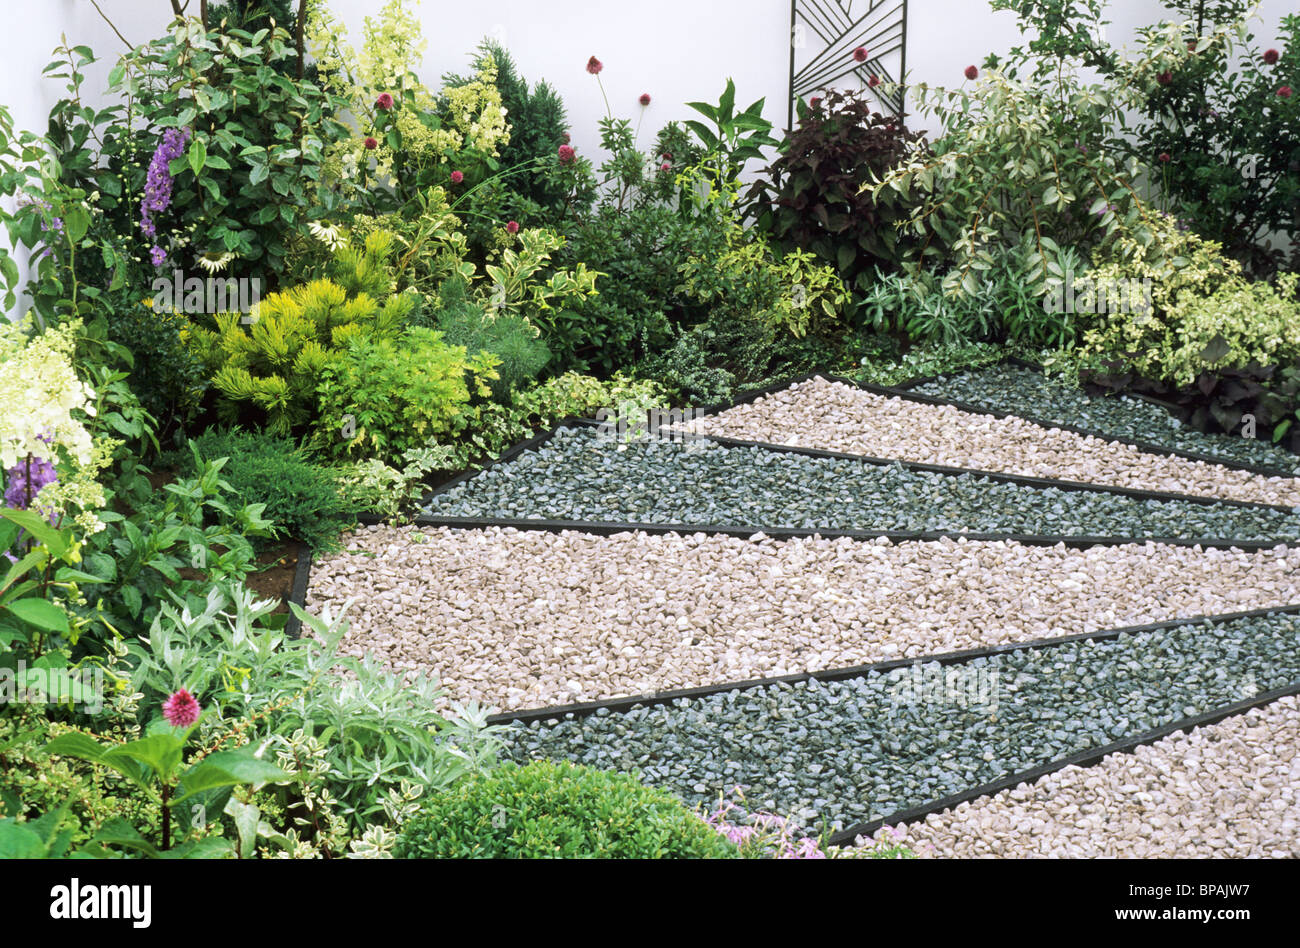 Garden Designs With Pebbles - windowsunity